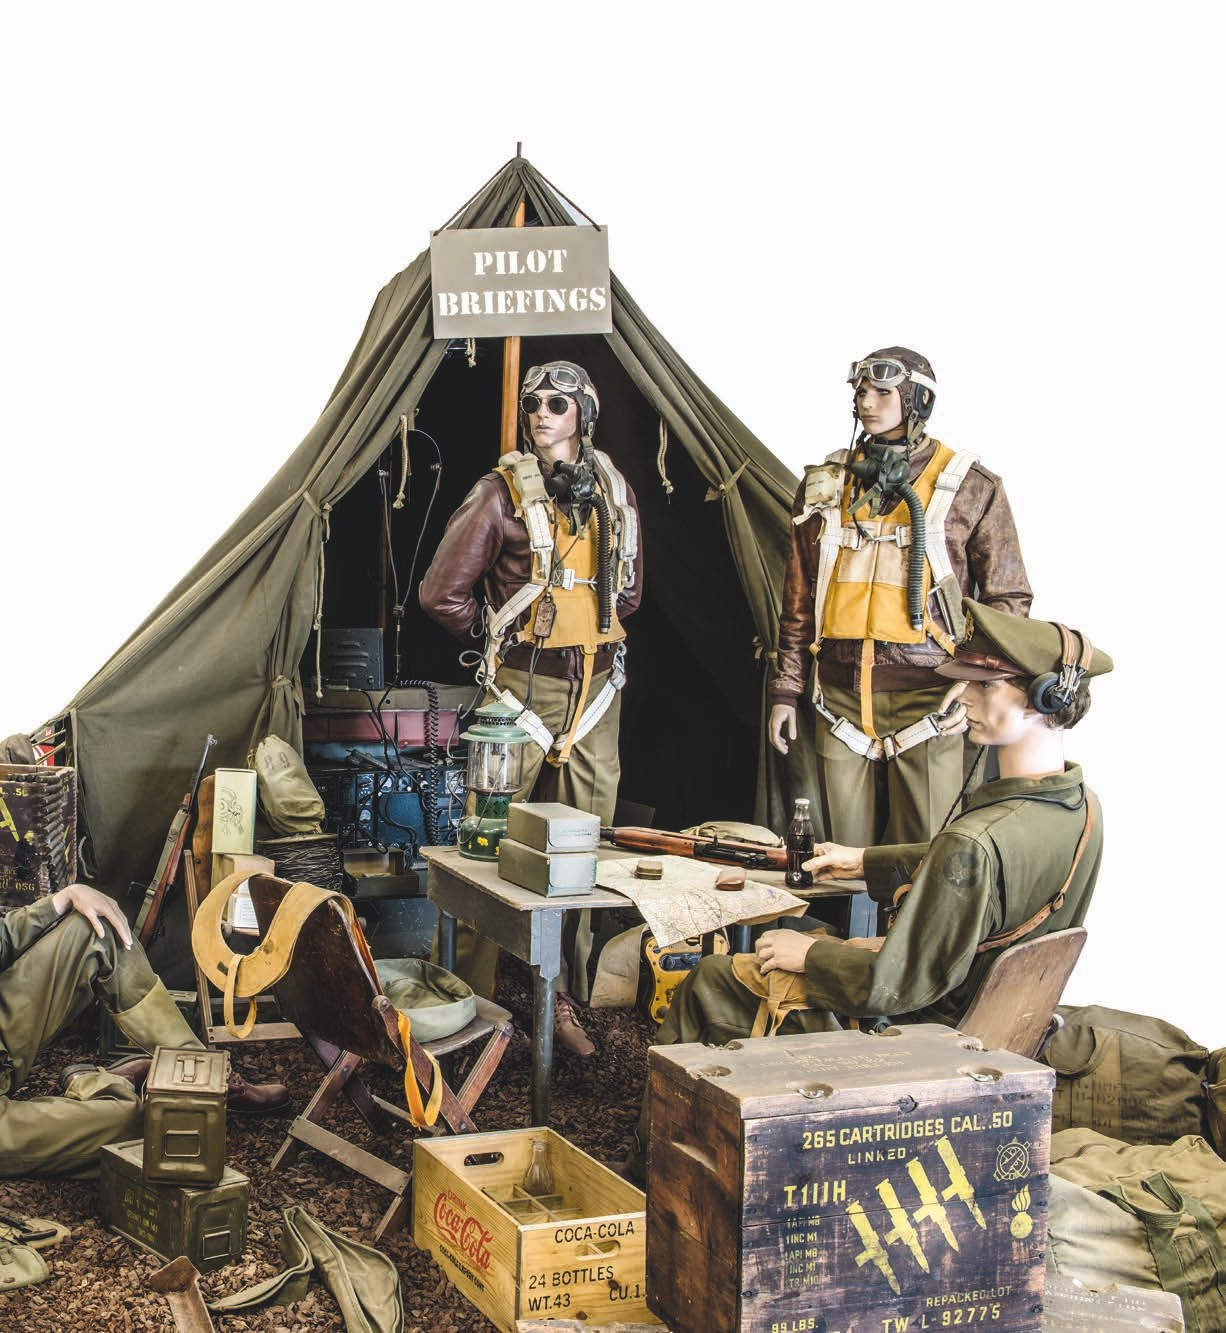 There are a number of well laid out displays with period equipment and uniforms. All up for grabs